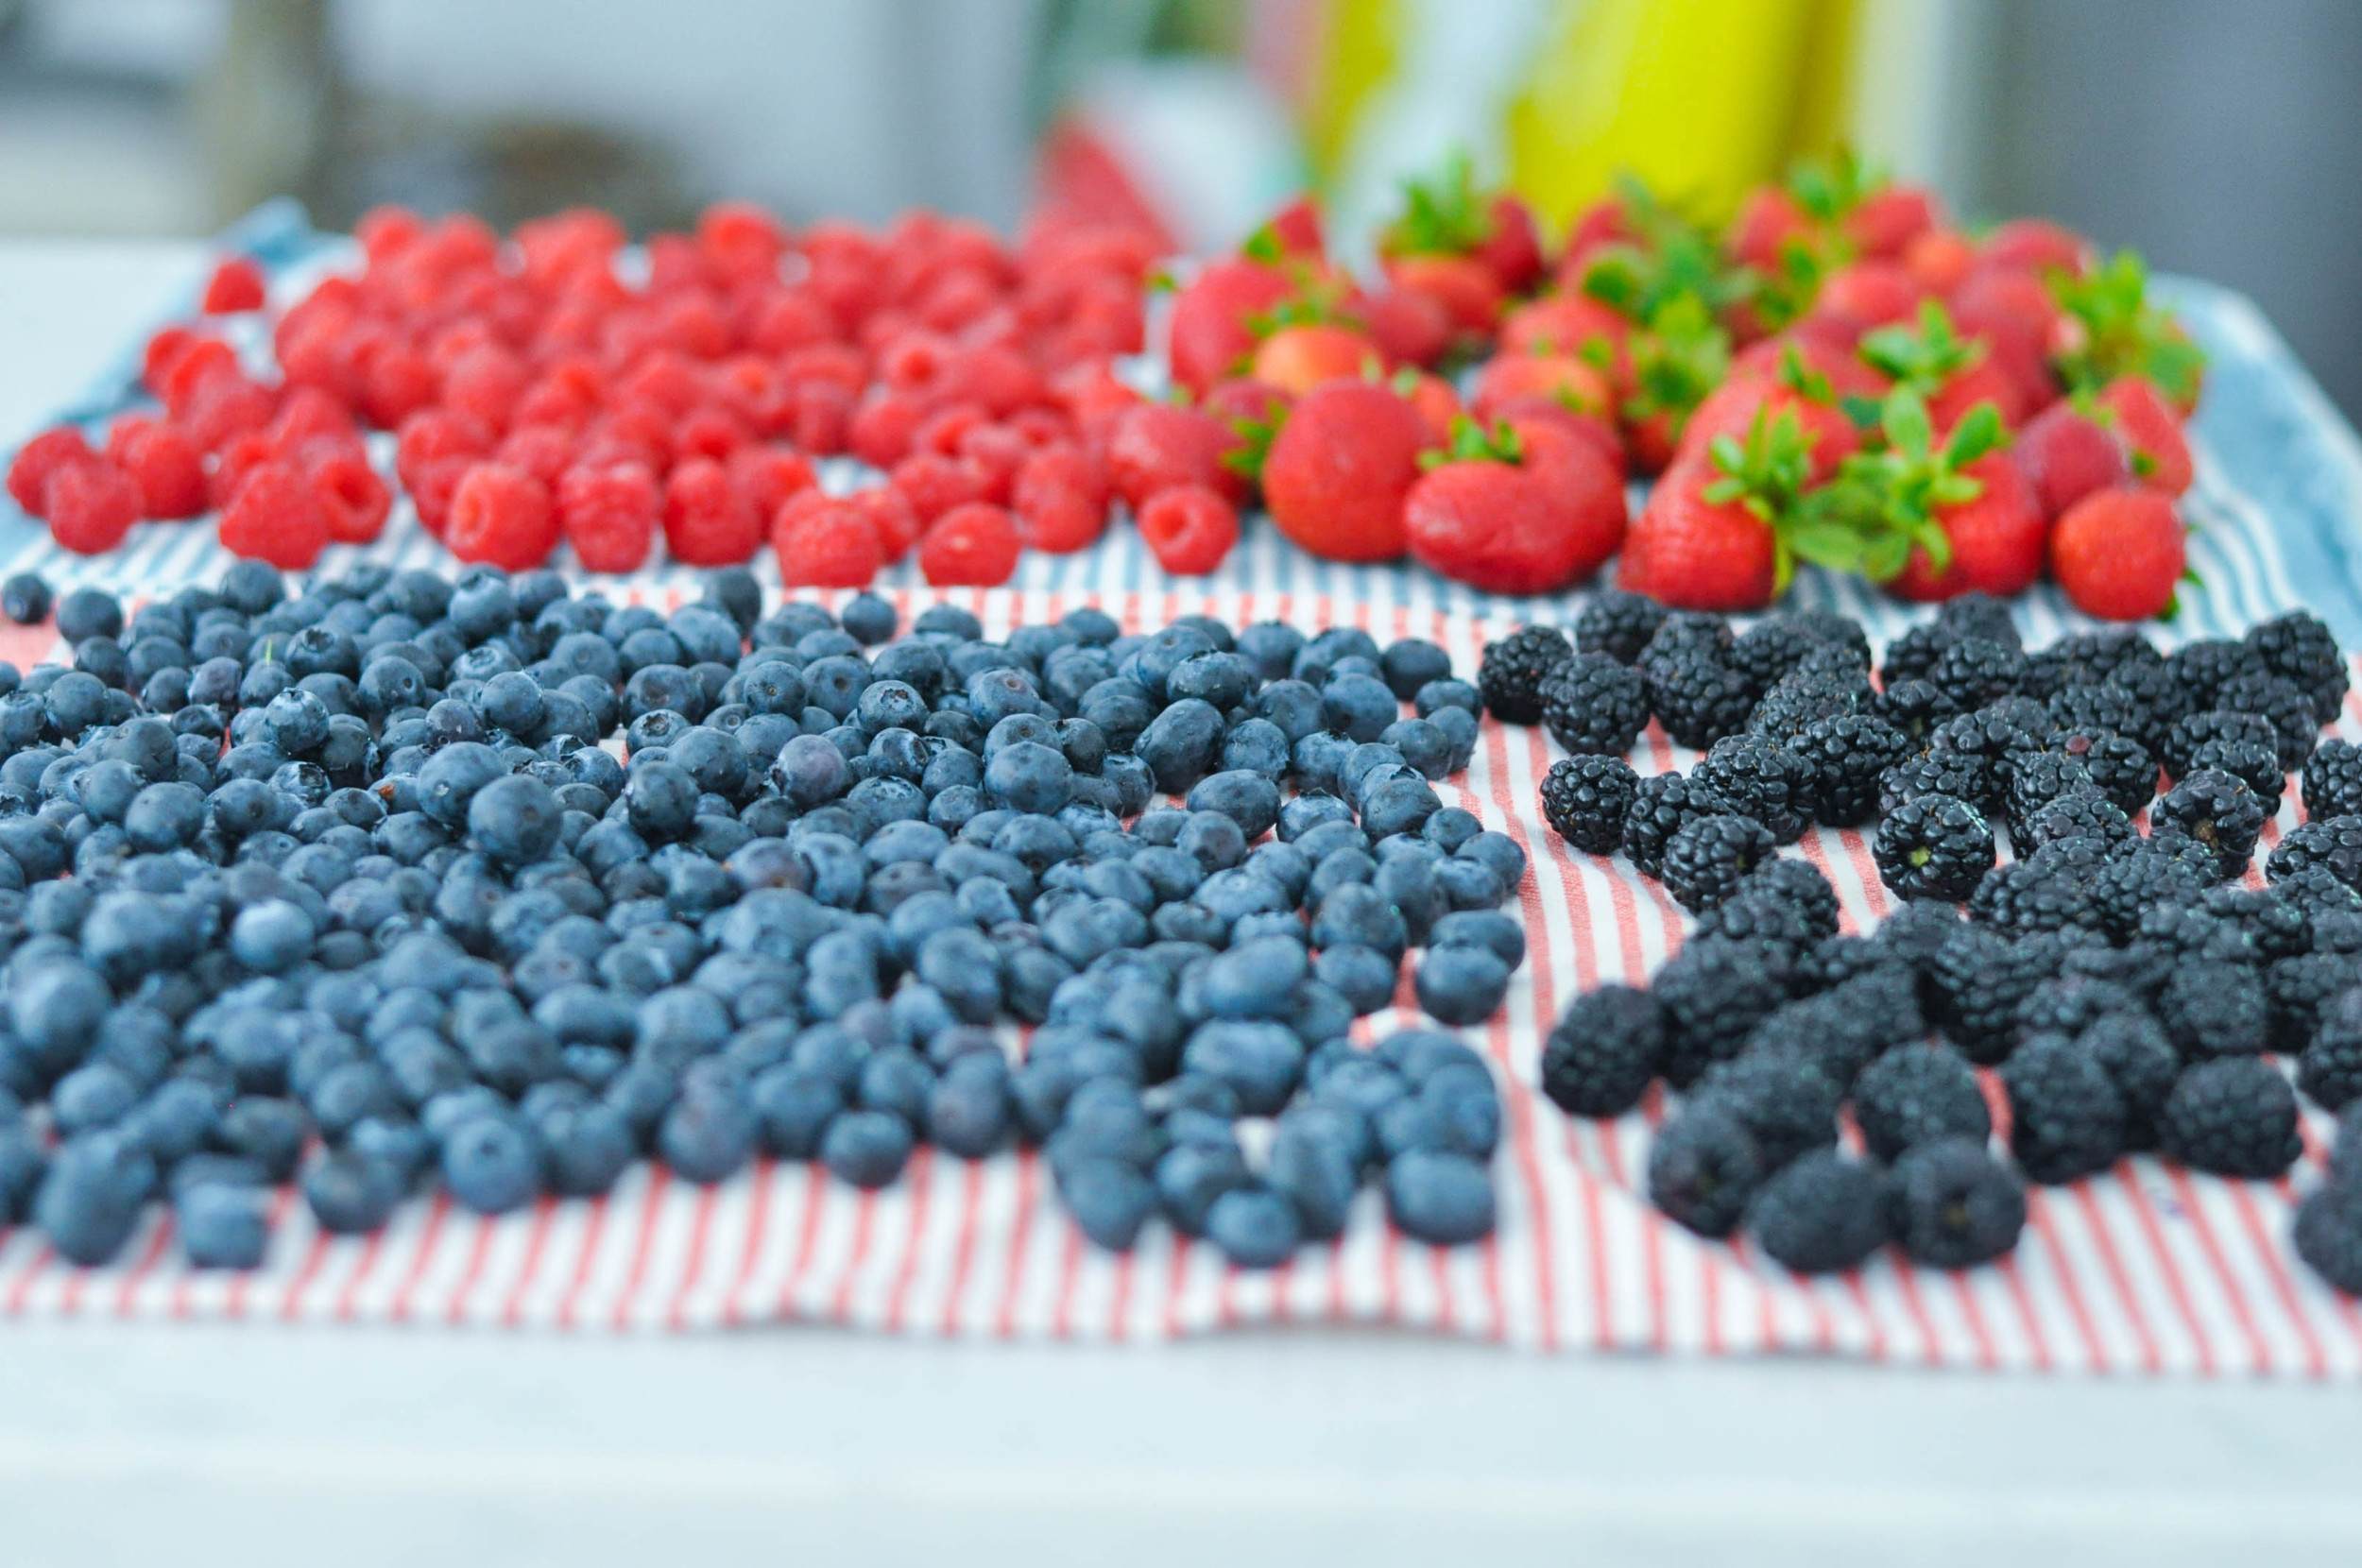 Erin Stanczyk | Lifestyle Design | eat.move.rest. | RED, WHITE, & BLUEBERRIES: 3 BERRY PATRIOTIC WAYS TO 'CHEERS' TO THE FOURTH OF JULY